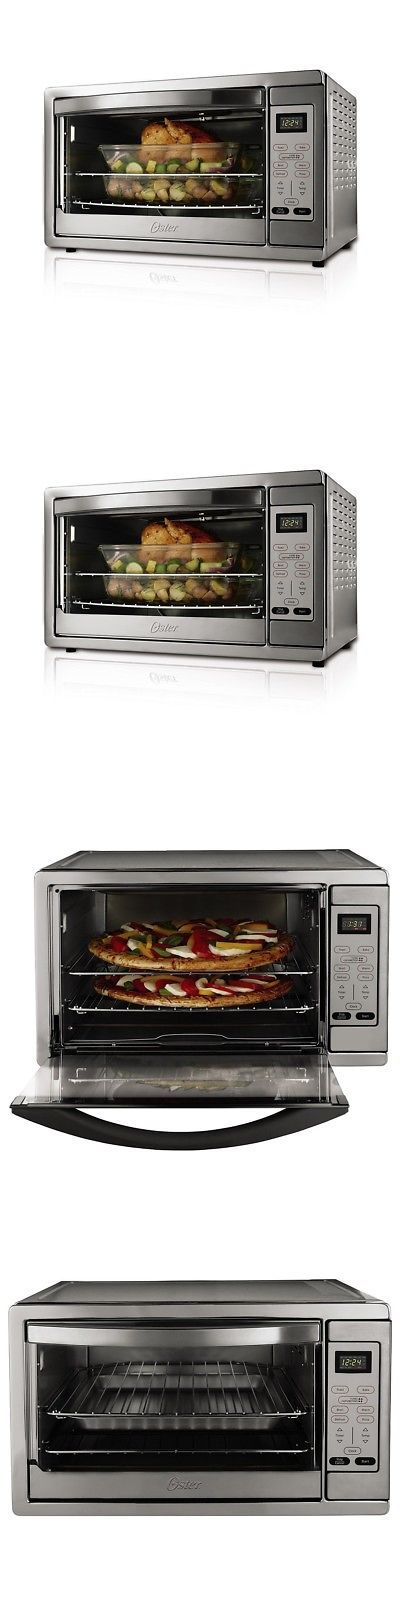 Toasters 77285 Oster Extra Large Digital Convection Toaster Oven